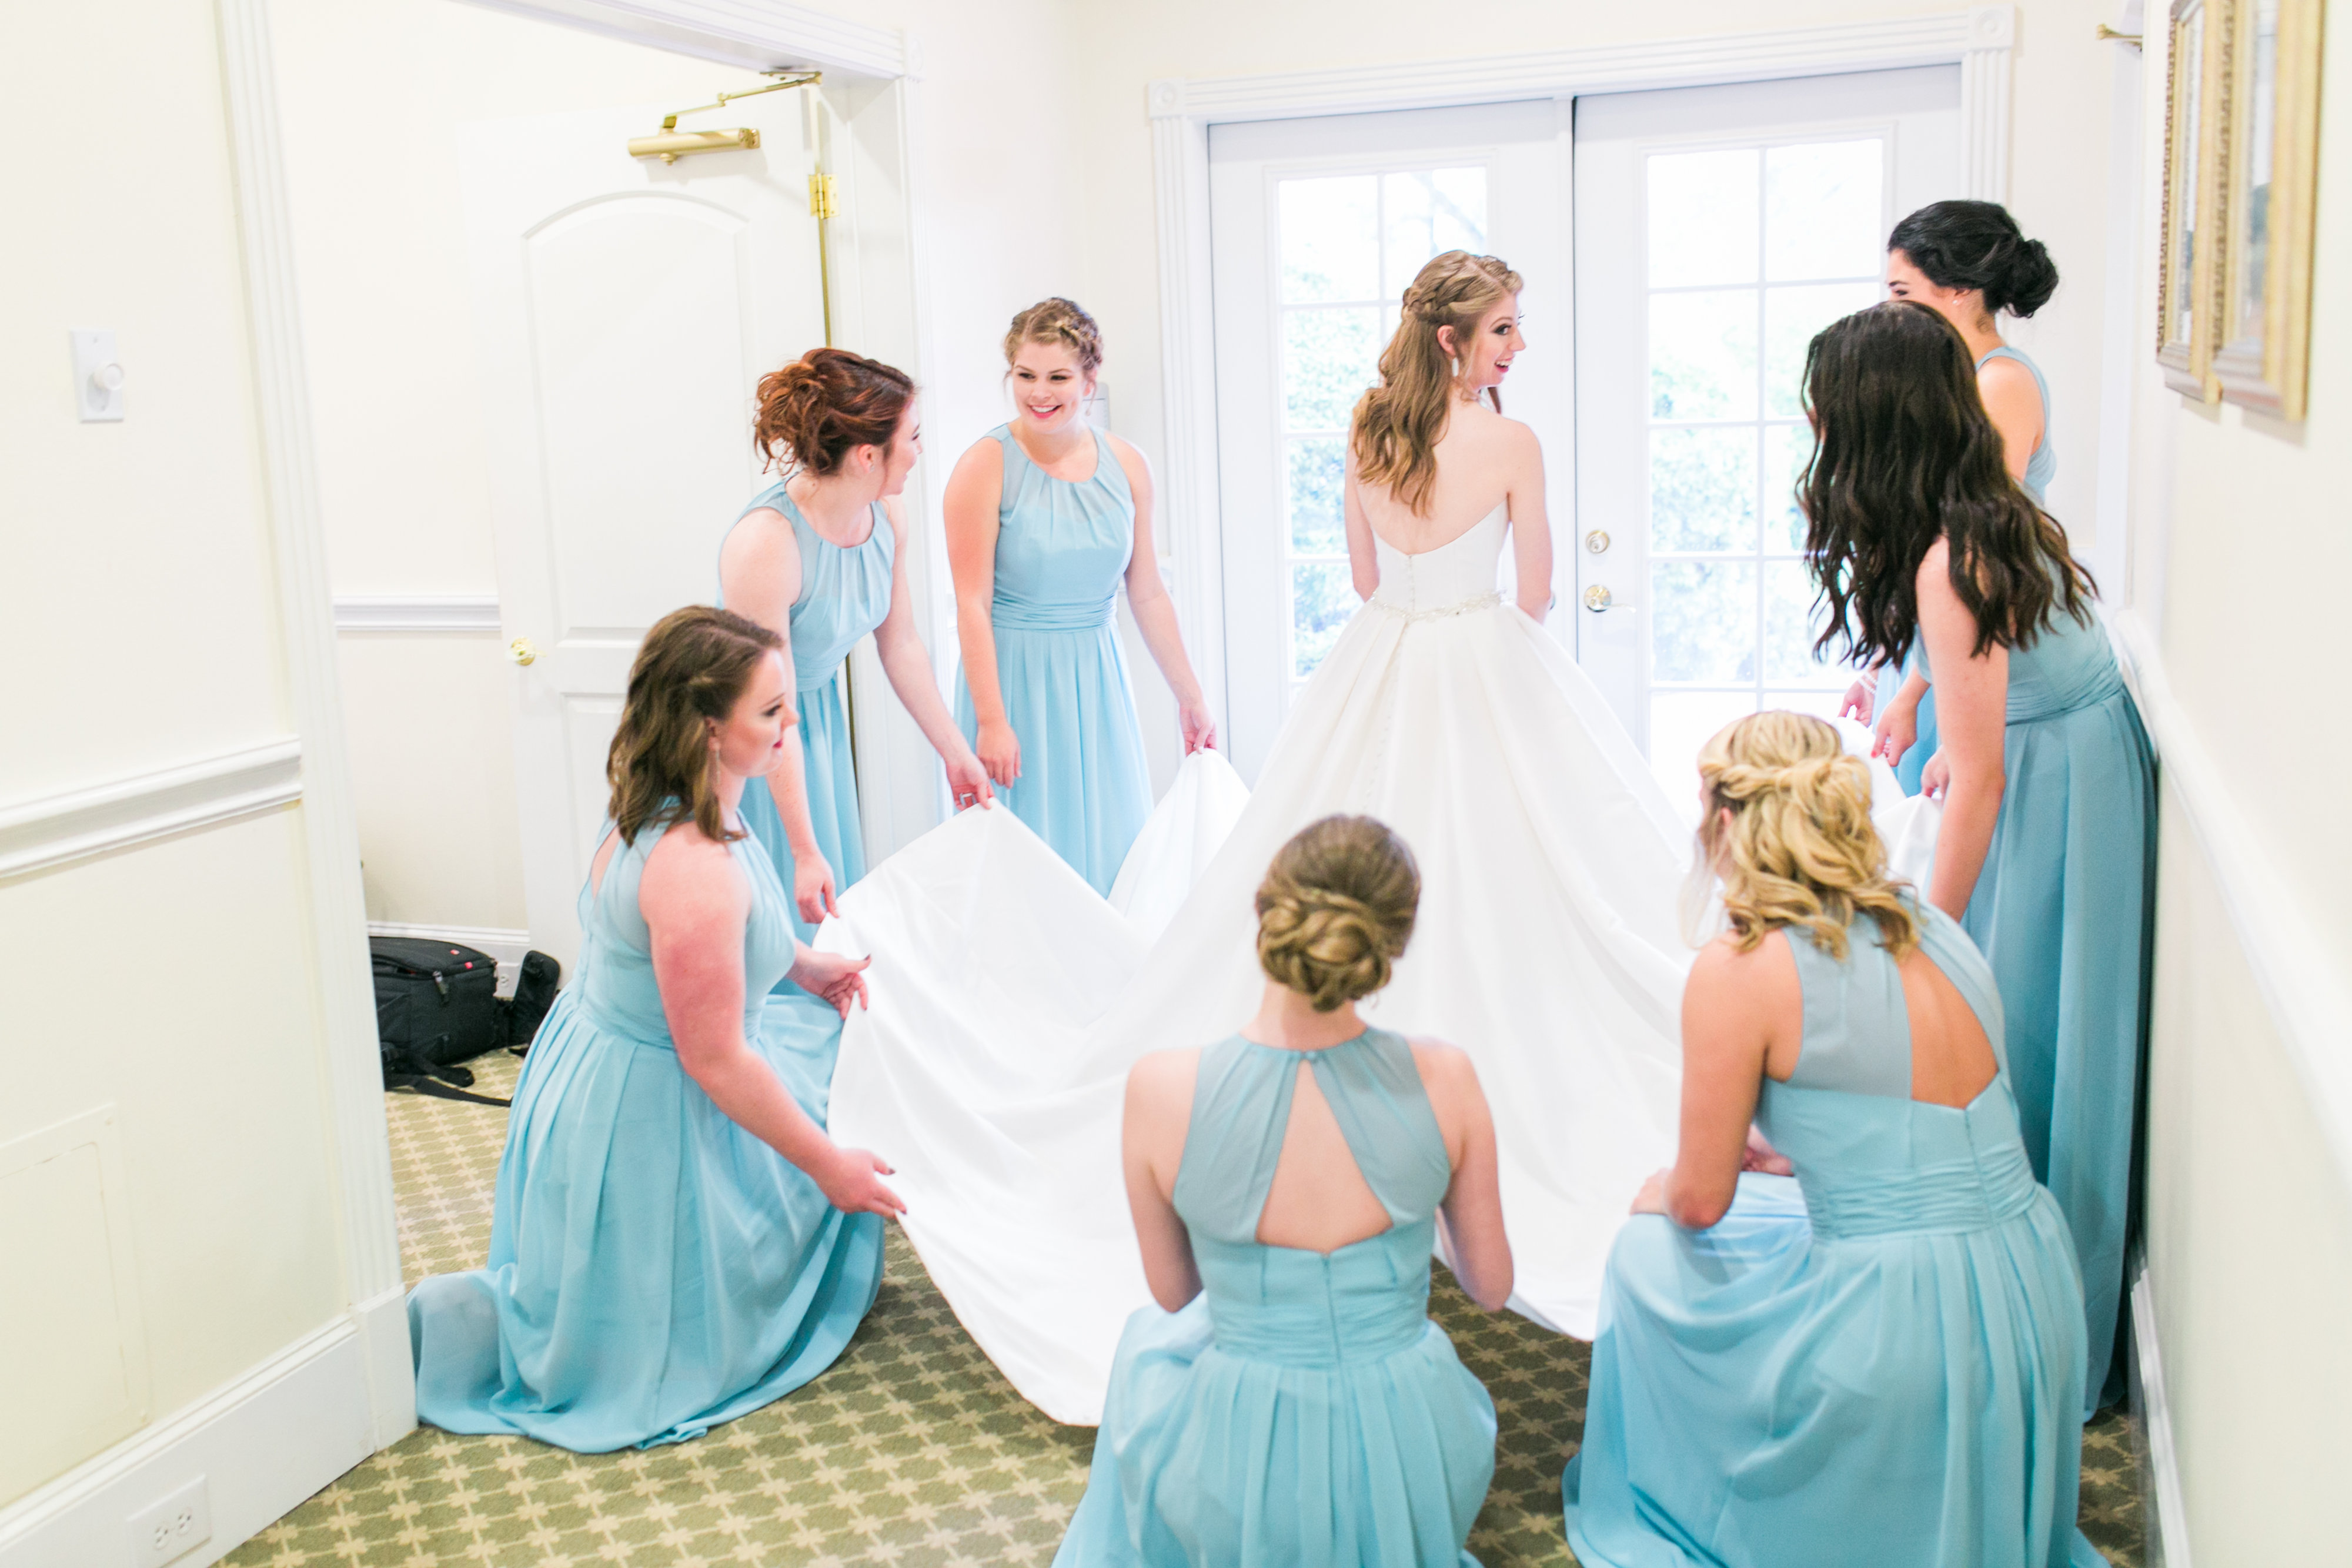 View More: http://photos.pass.us/boehmhoosewedding